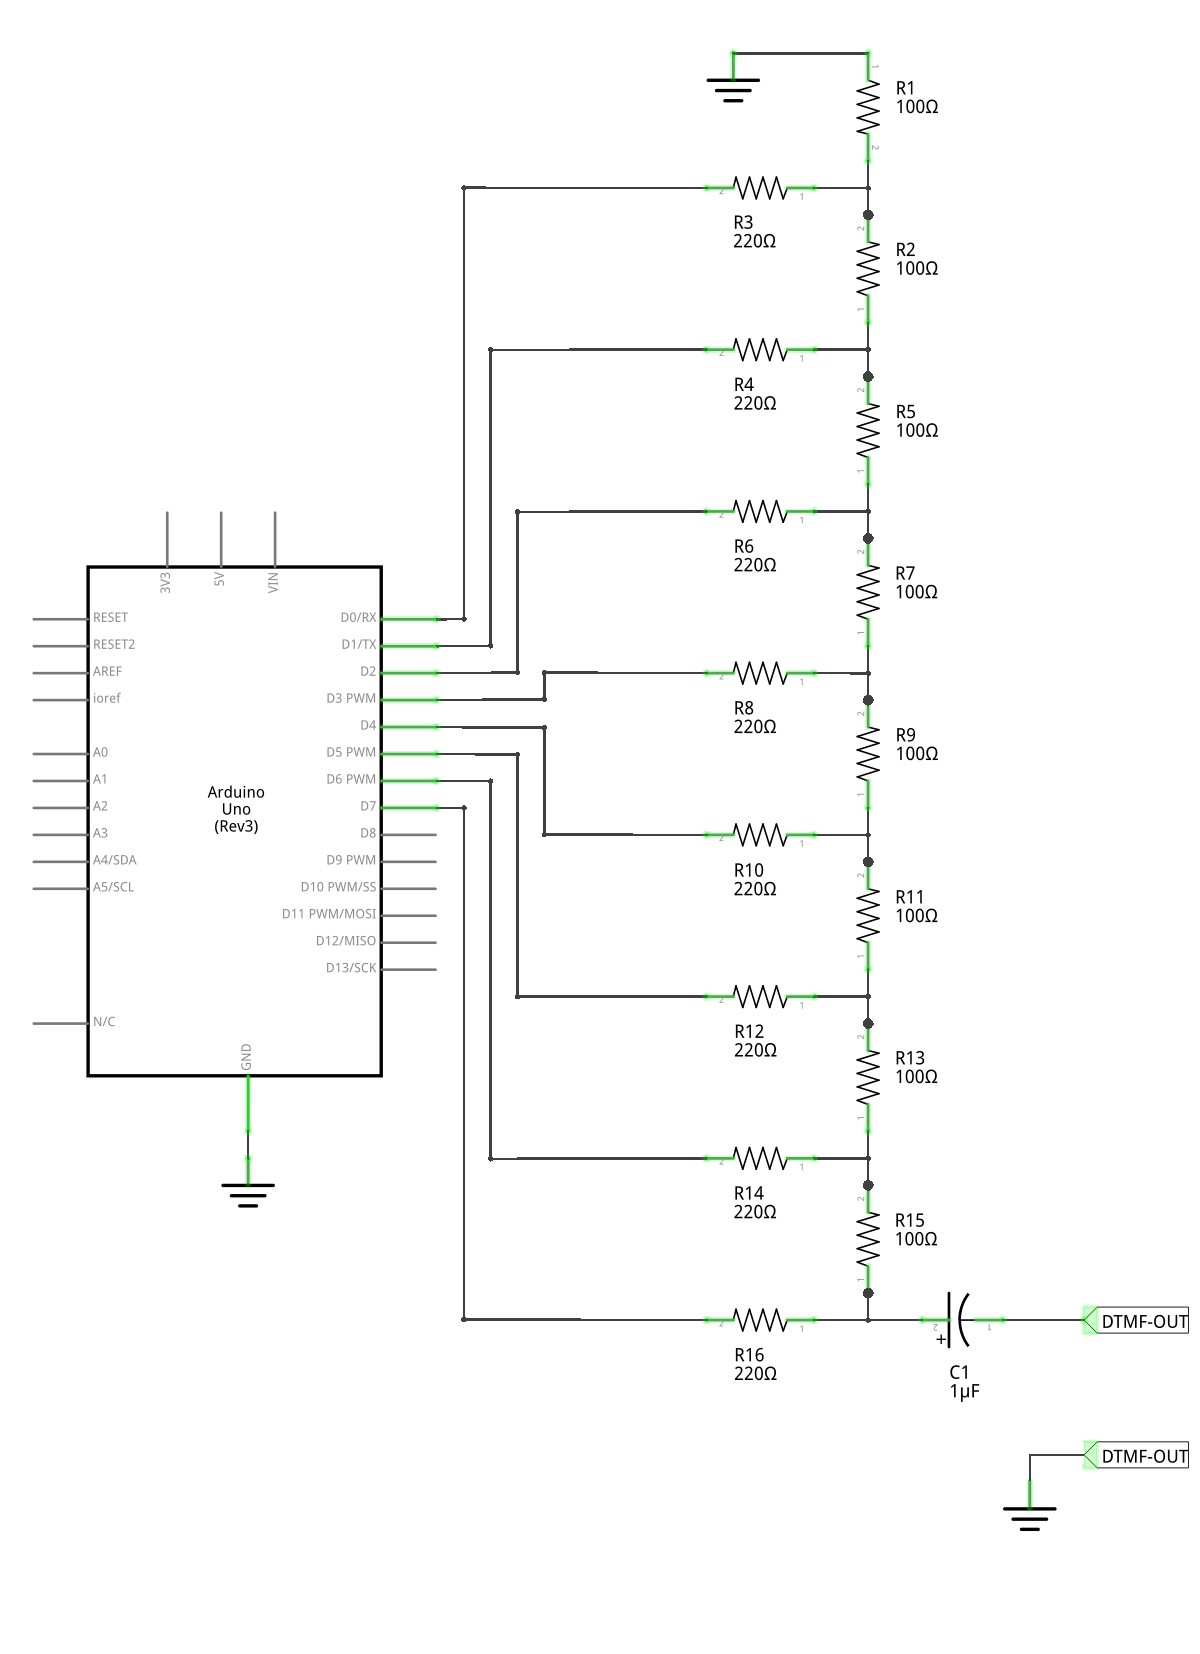 Do we need another chip to generate DTMF tones with Arduino?